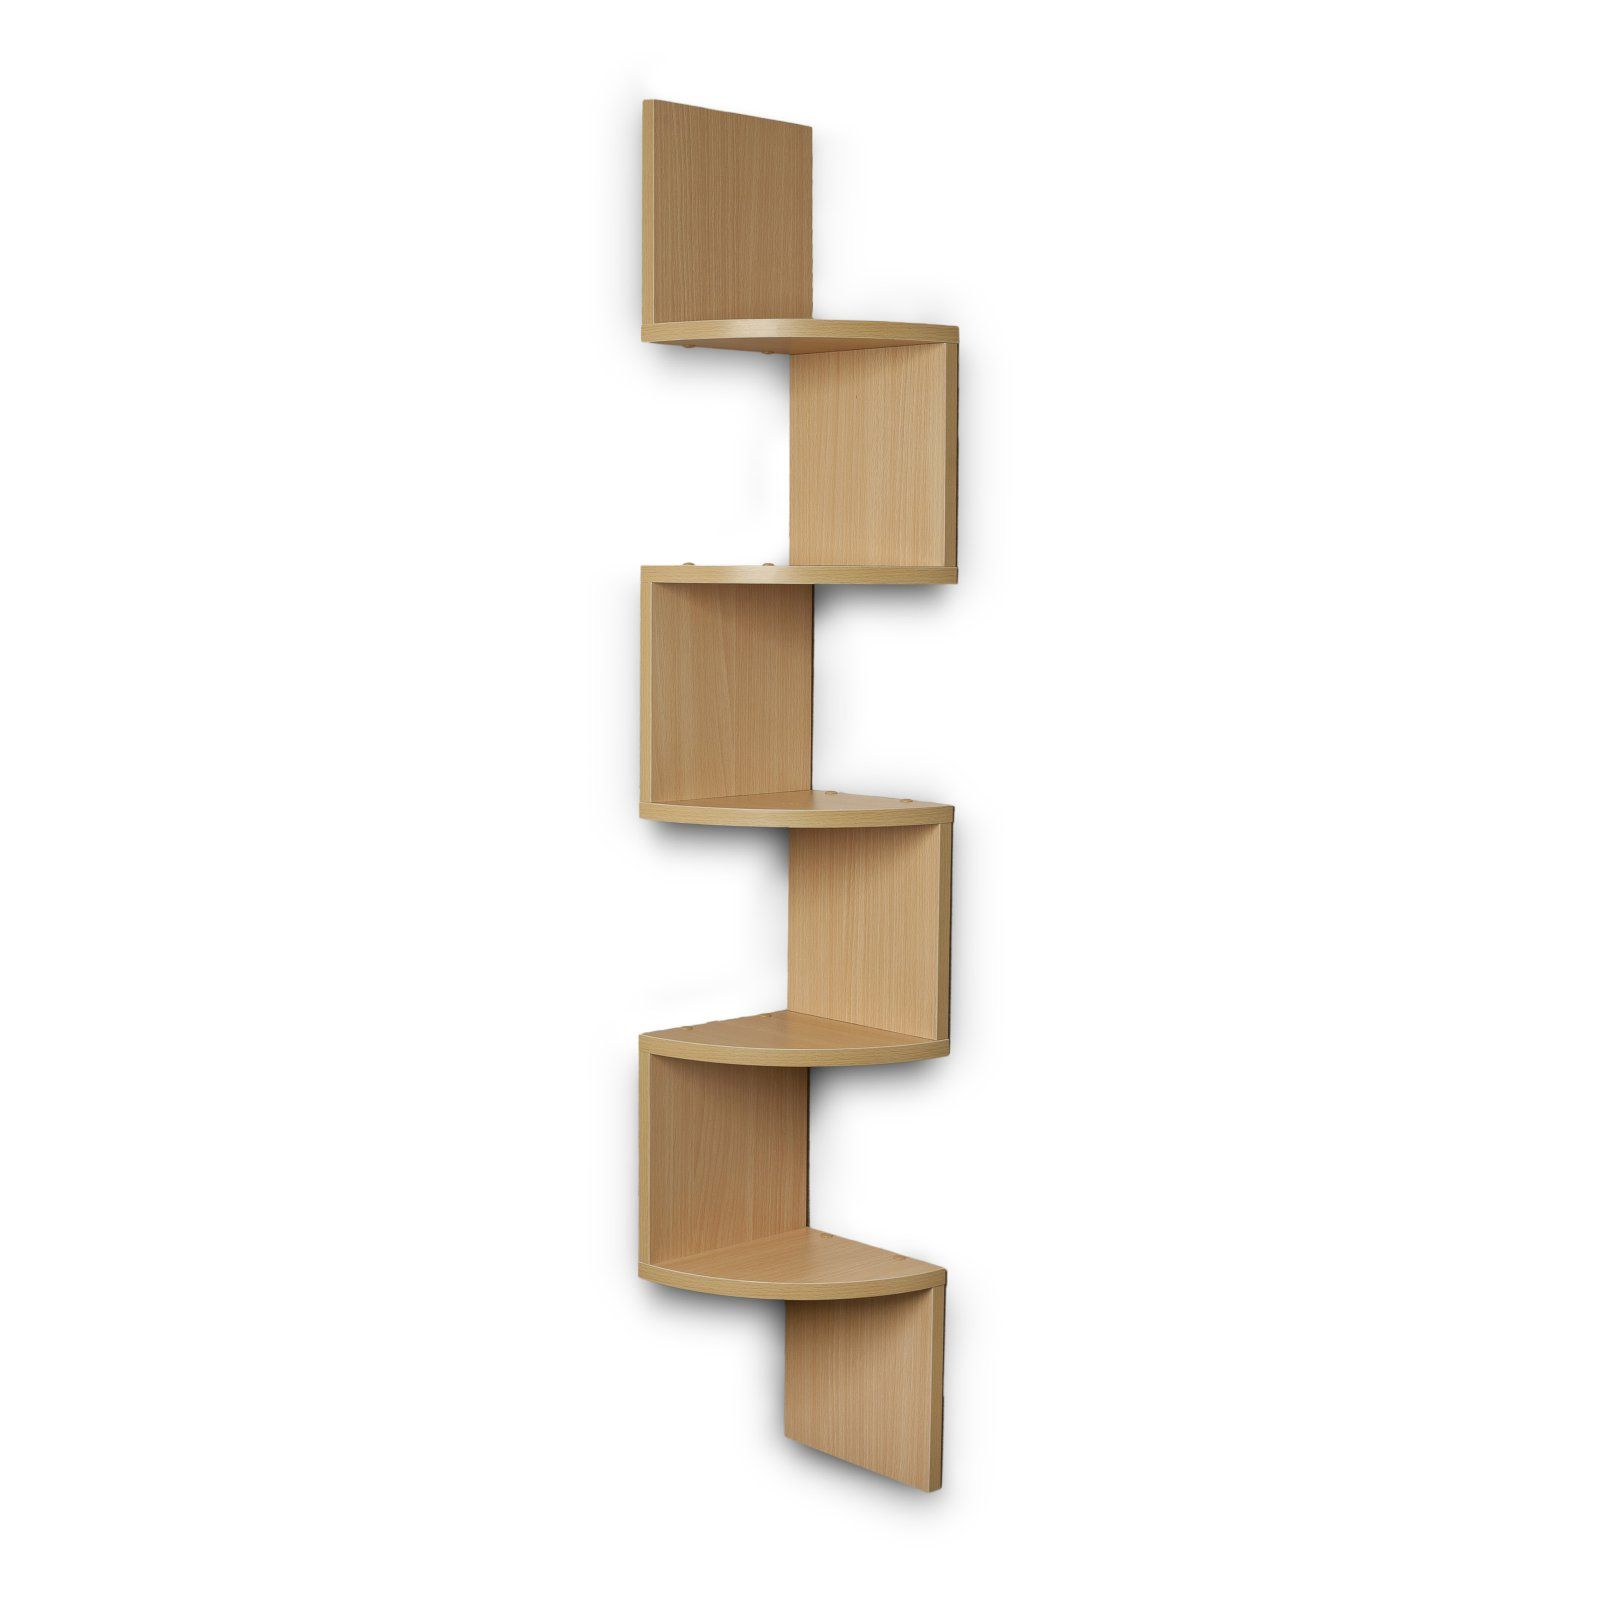 Danya B Large Laminated Corner Wall Mount Shelf Wall Mounted Shelves Corner Wall Corner Wall Shelves